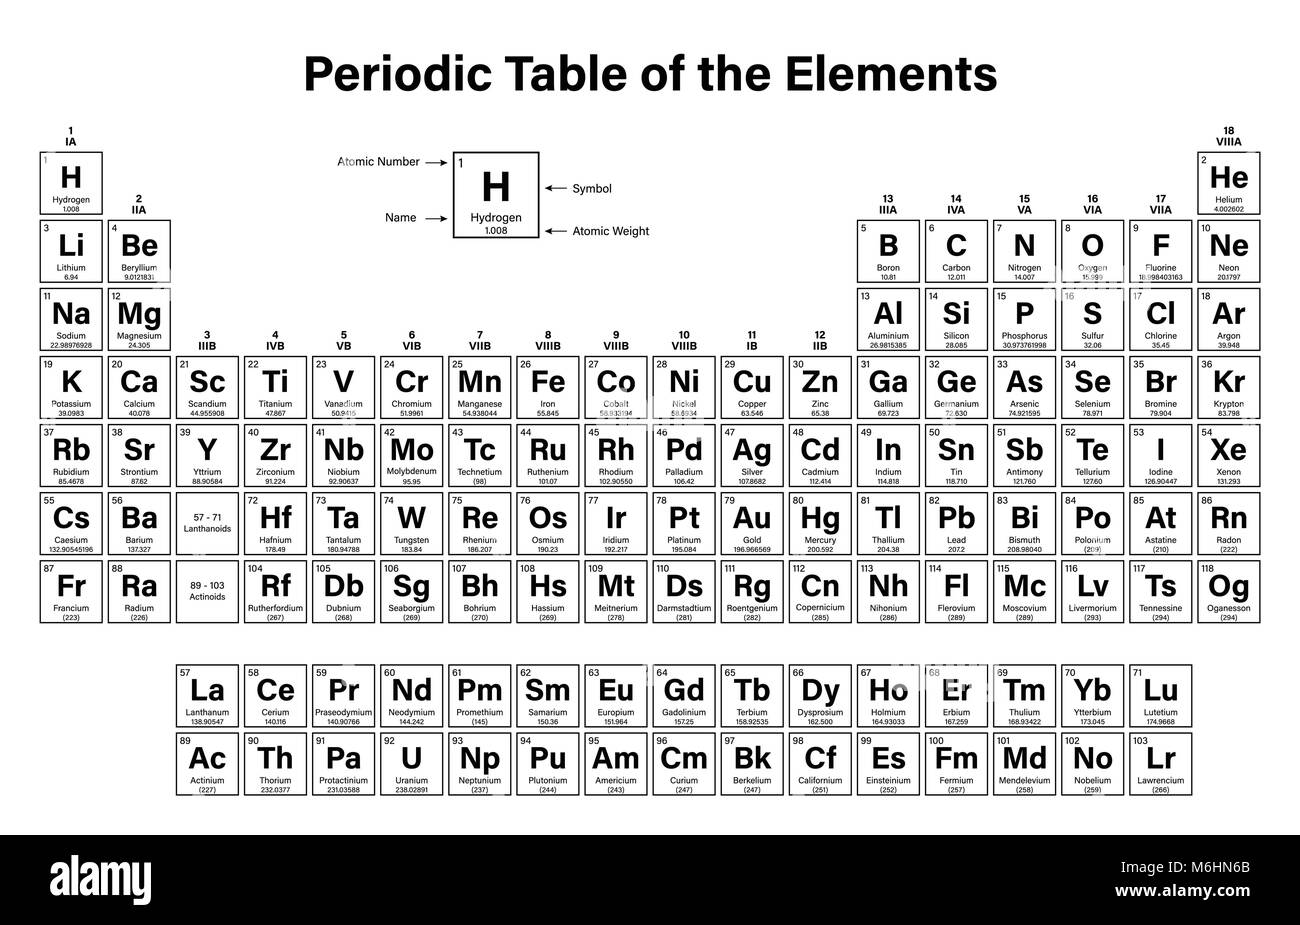 Periodic Table Of The Elements Vector Illustration   Shows Atomic Number,  Symbol, Name And Atomic Weight